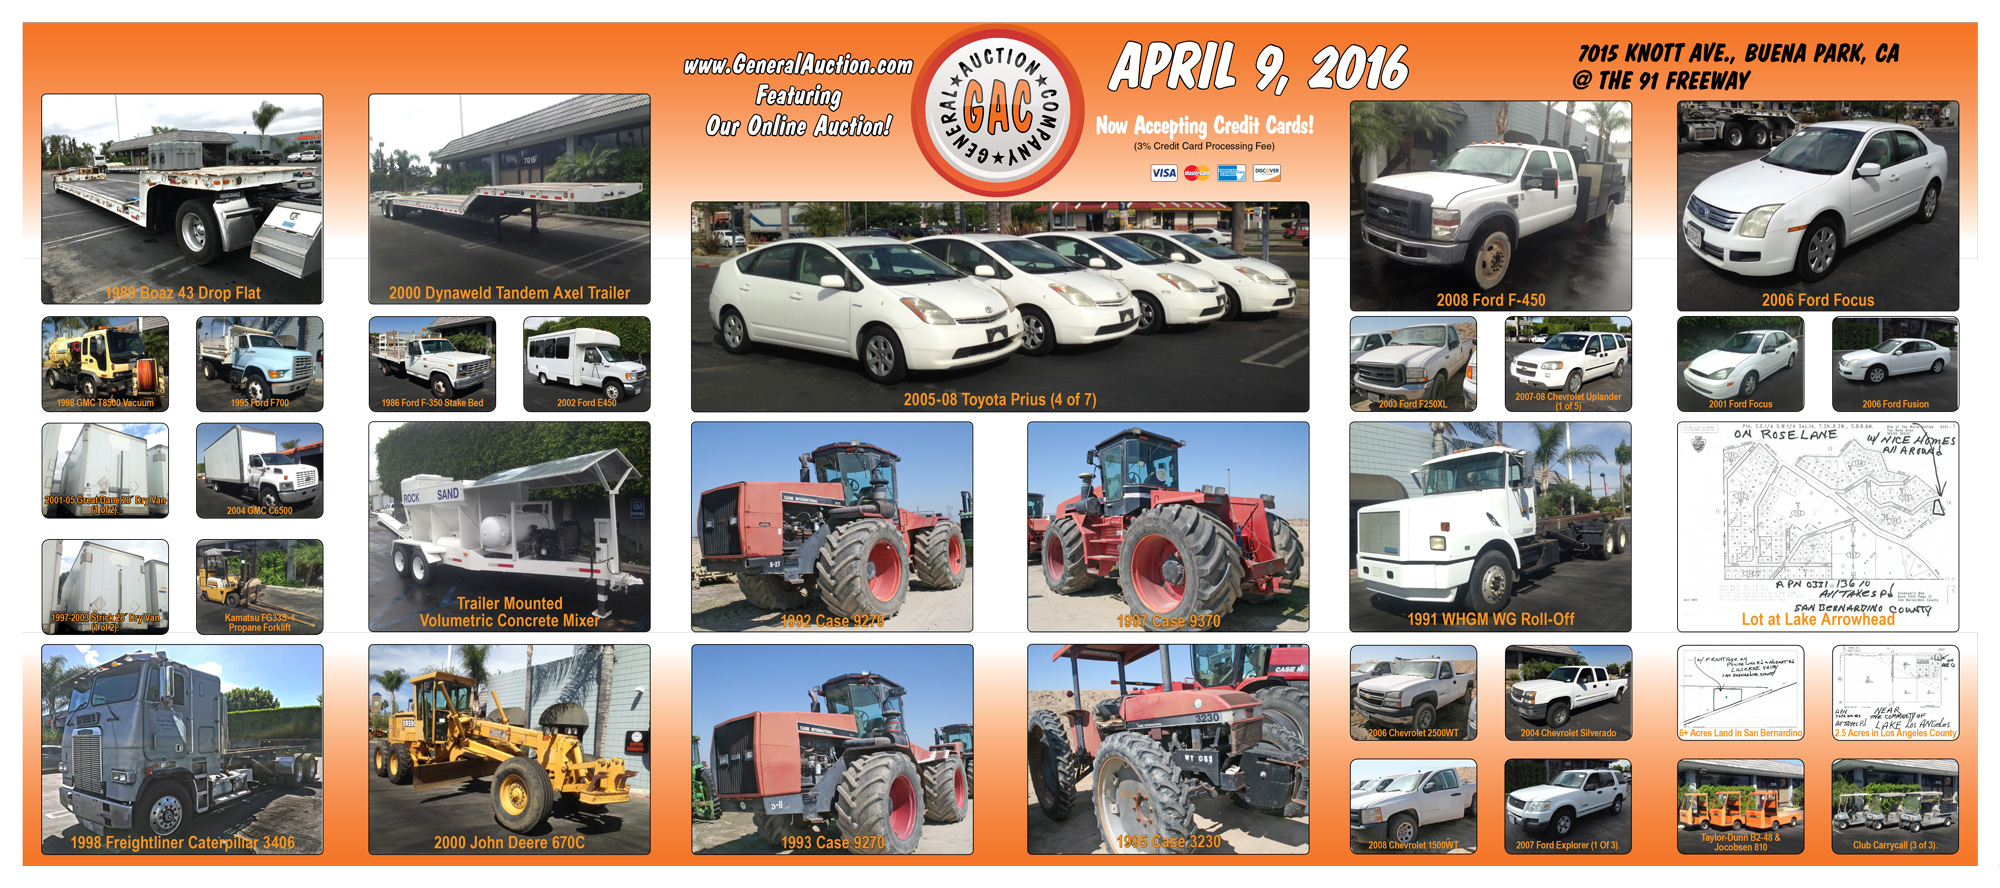 april 9 2016 auction brochure